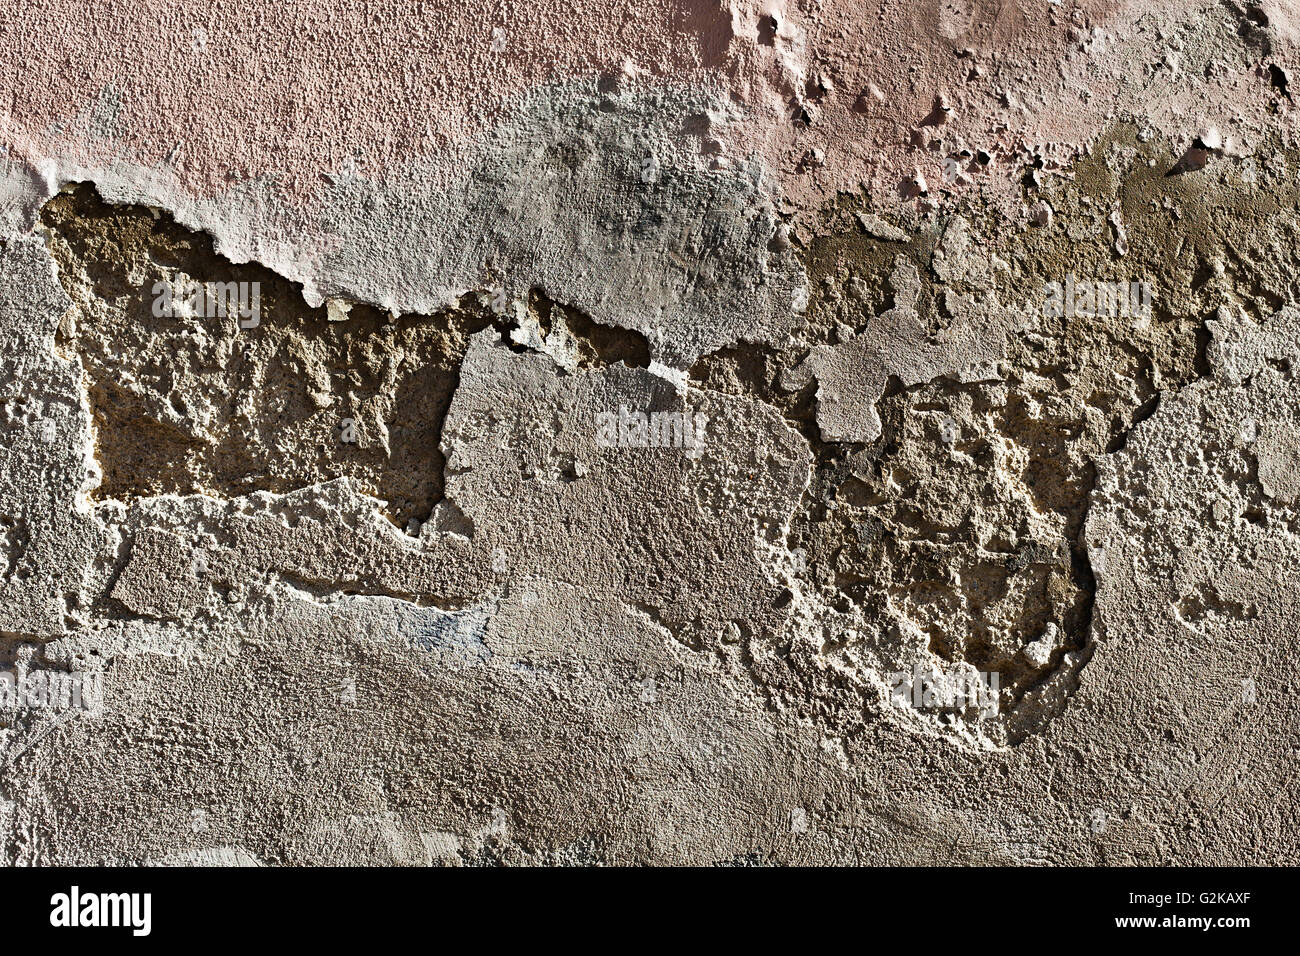 Old brittle masonry - Stock Image